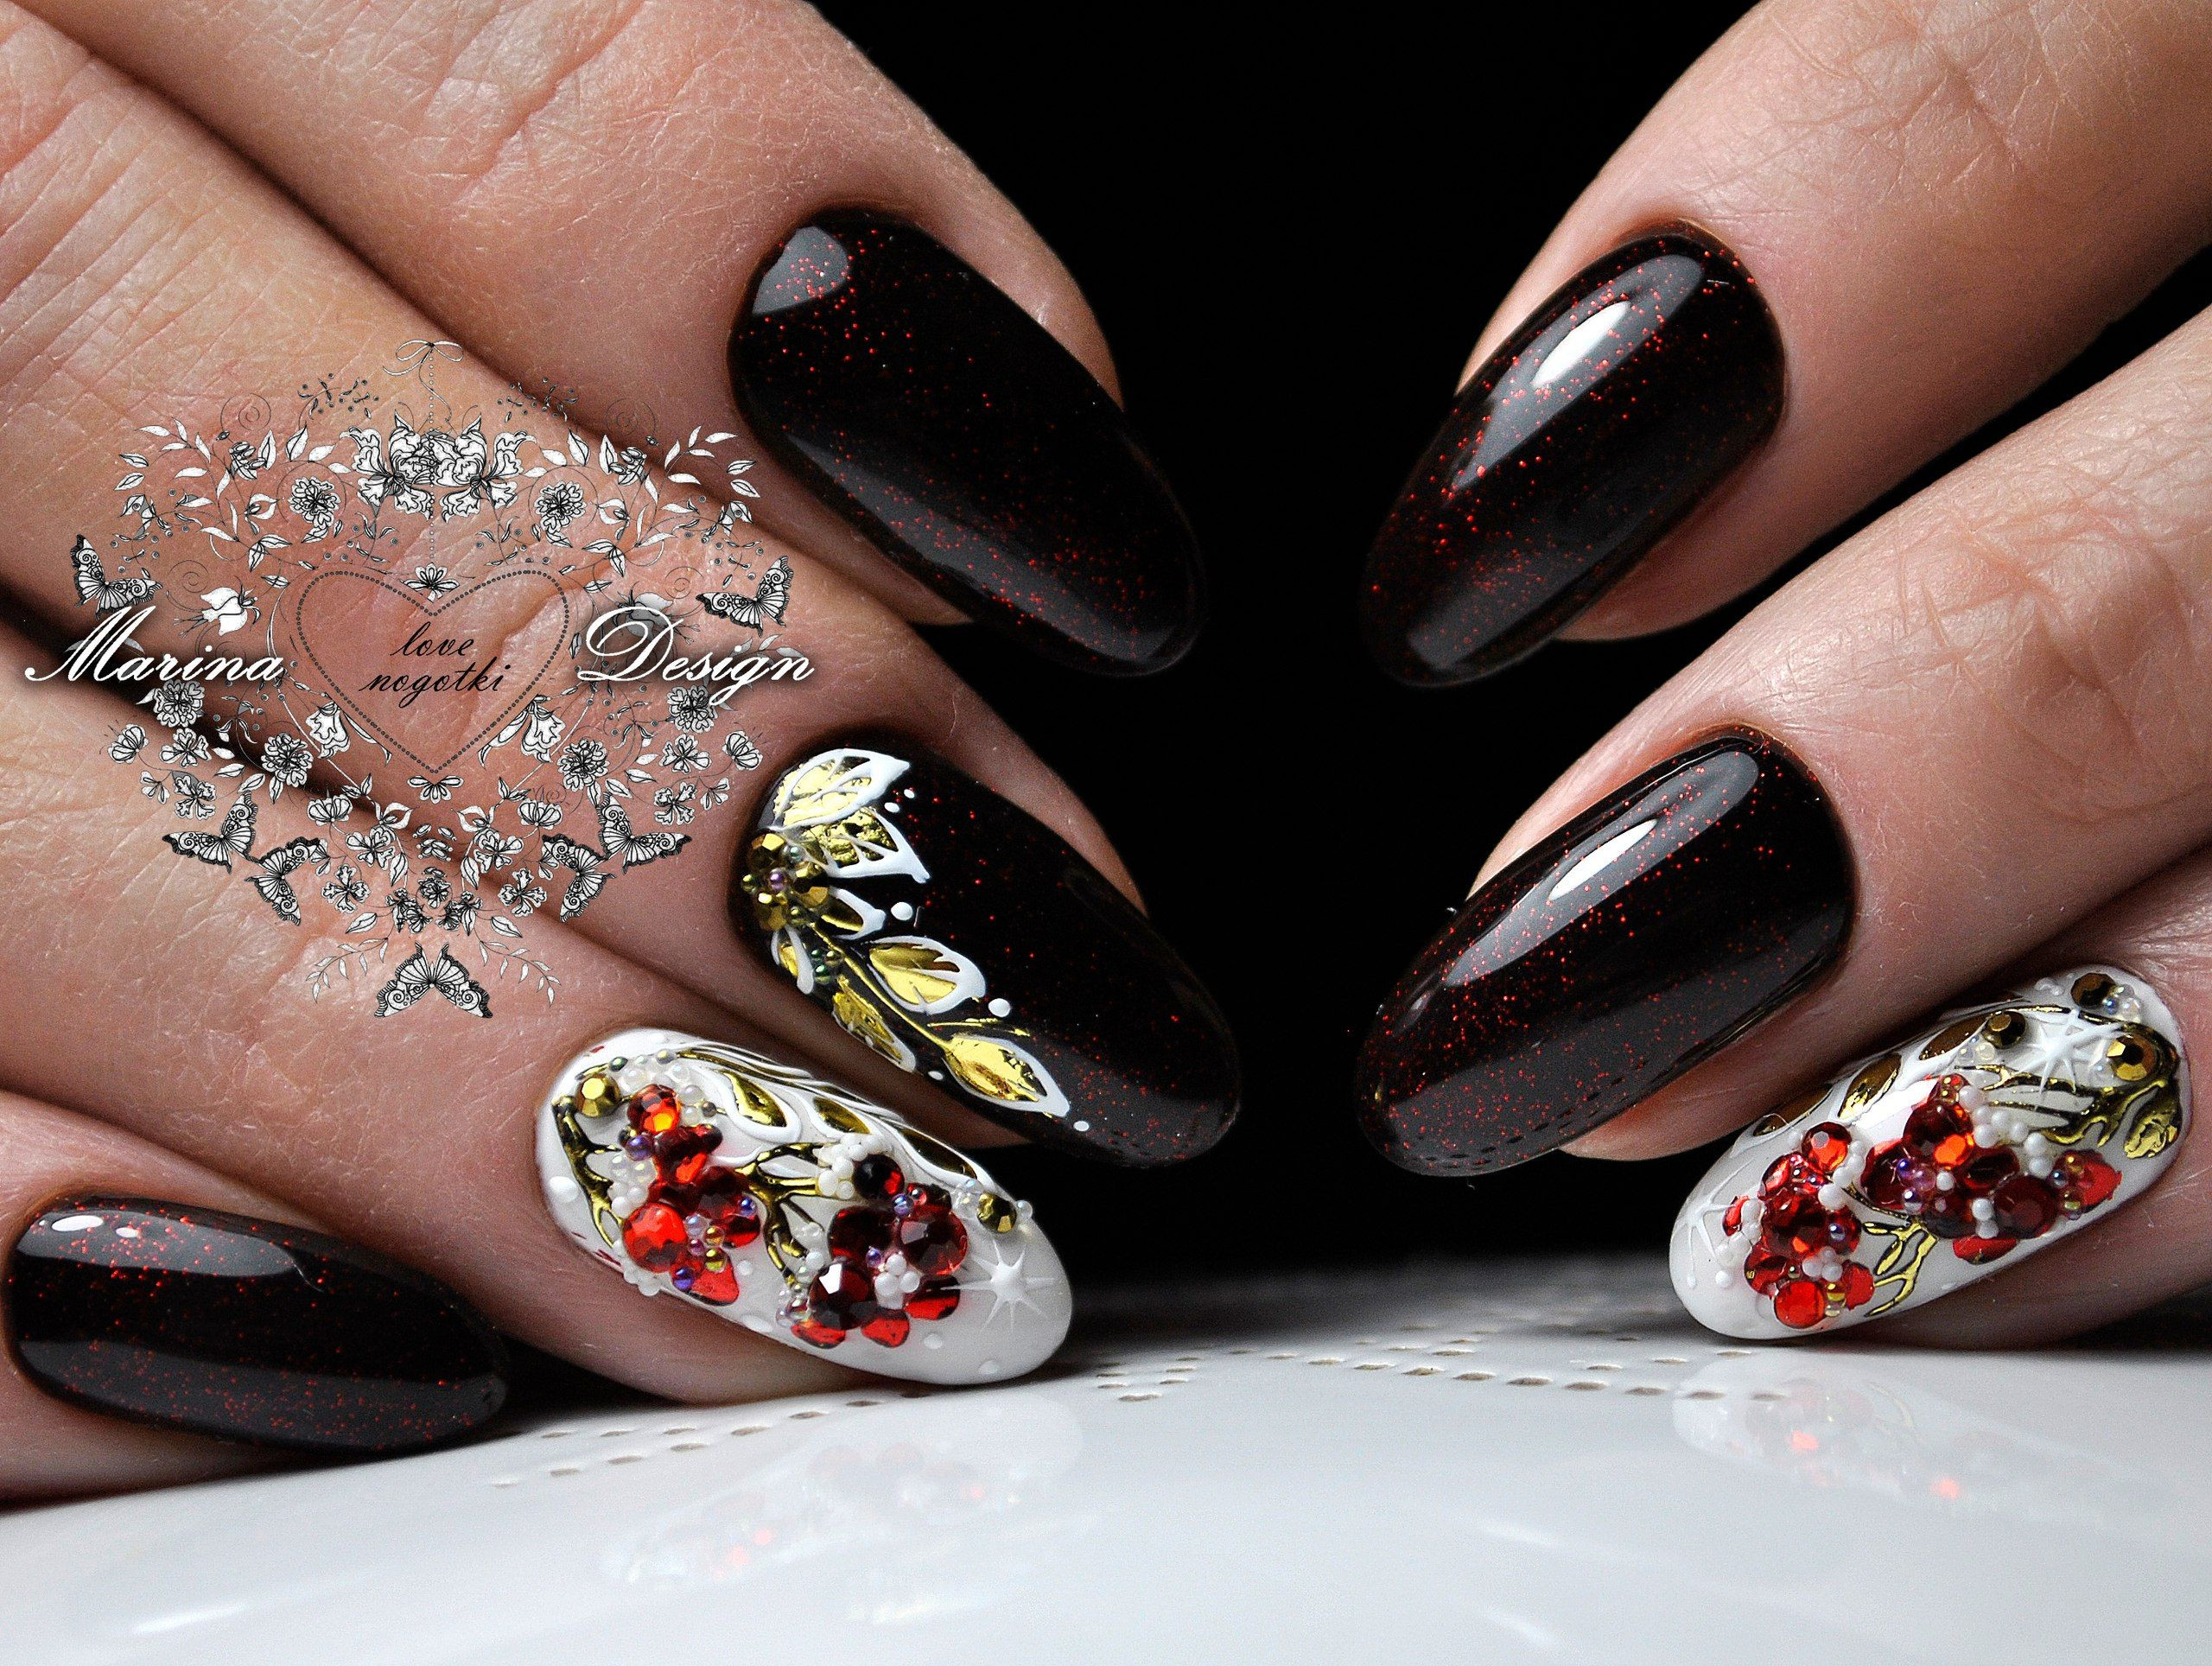 Natürliche Nageldesigns  Subscribe Keep the ideas Go to other boards manicure